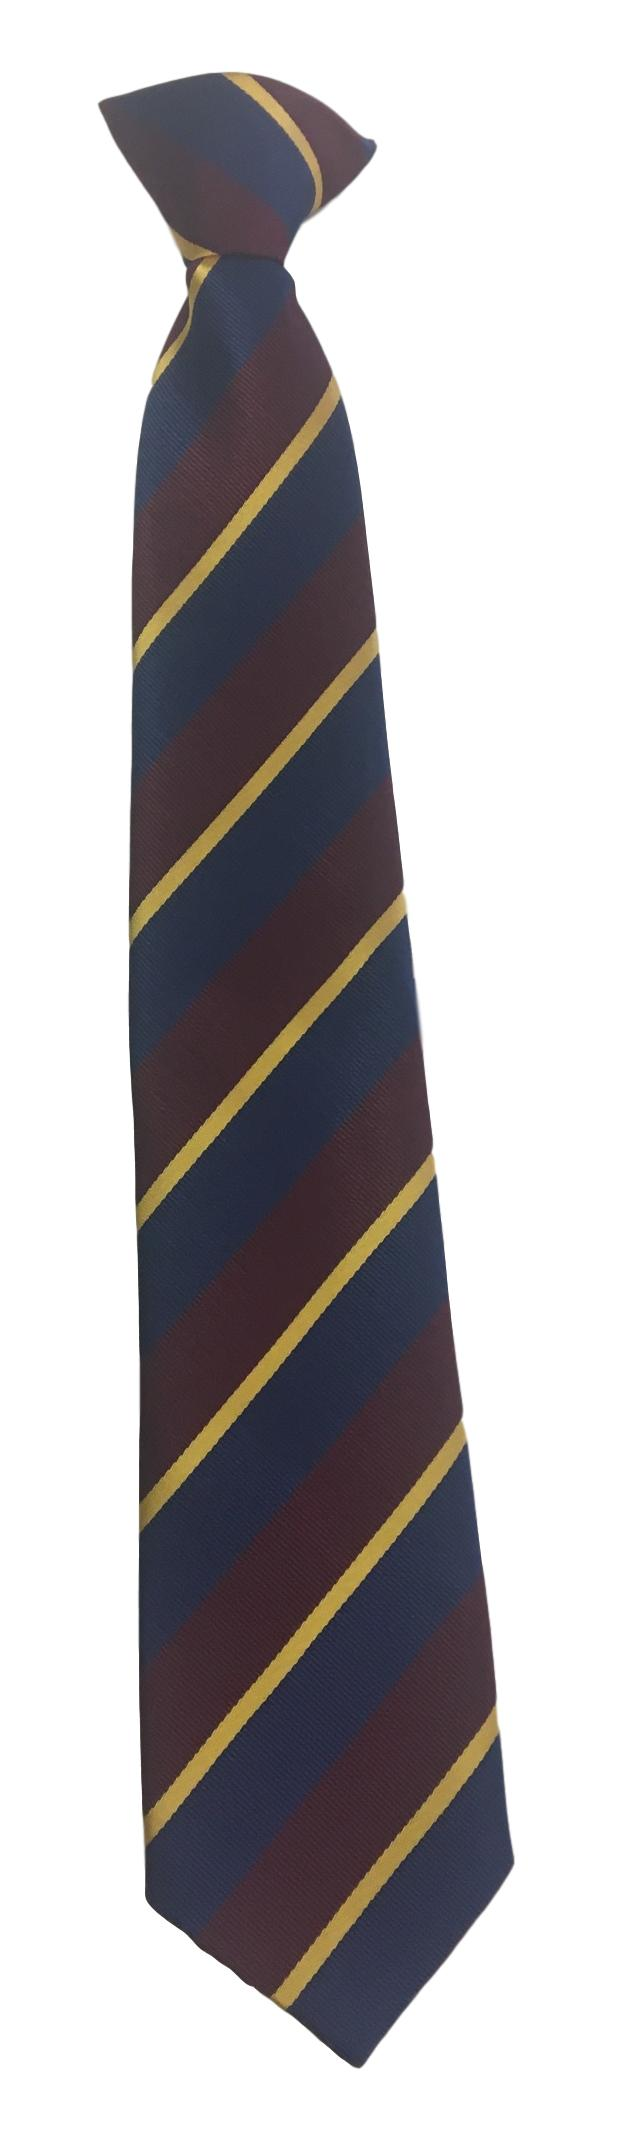 Hawthorn High School Navy Tie Clip On (Years 7-8)